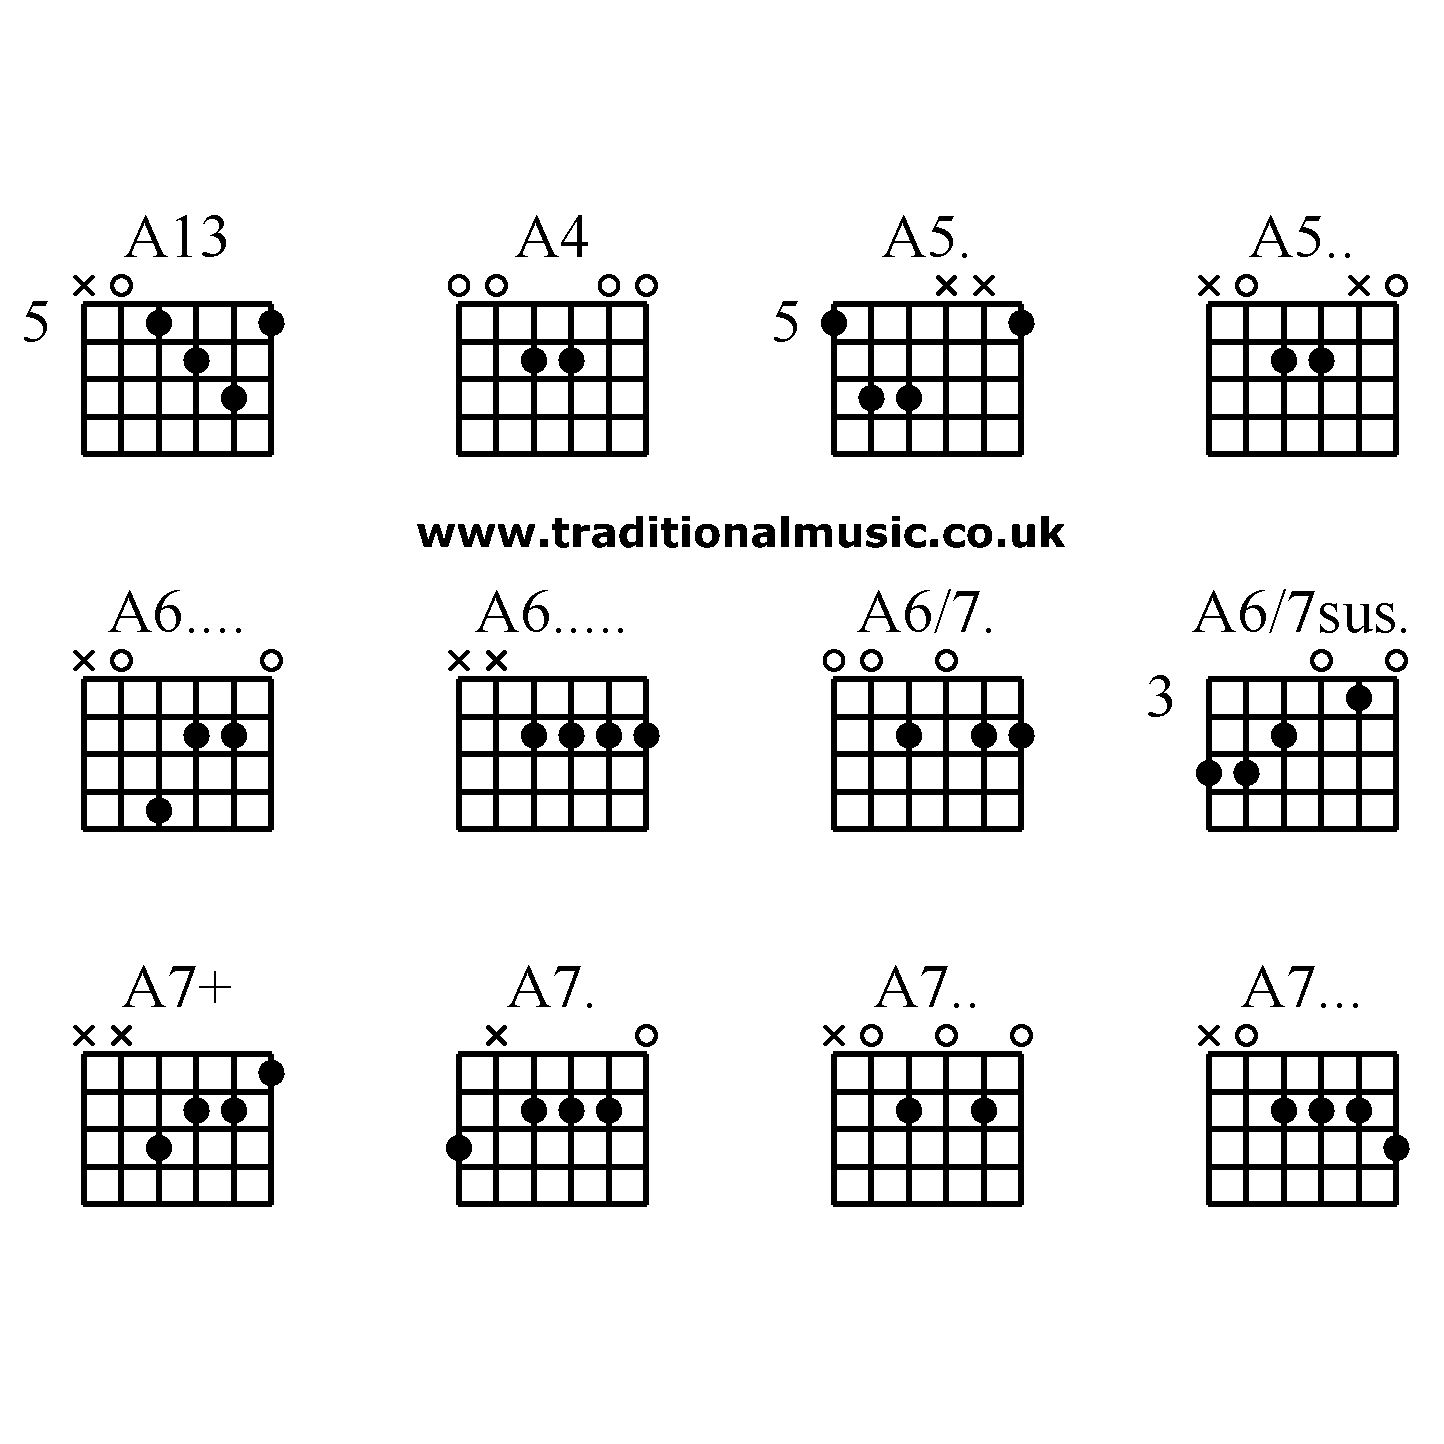 Advanced Guitar Chords A13 A4 A5 A5 A6 A6 A6